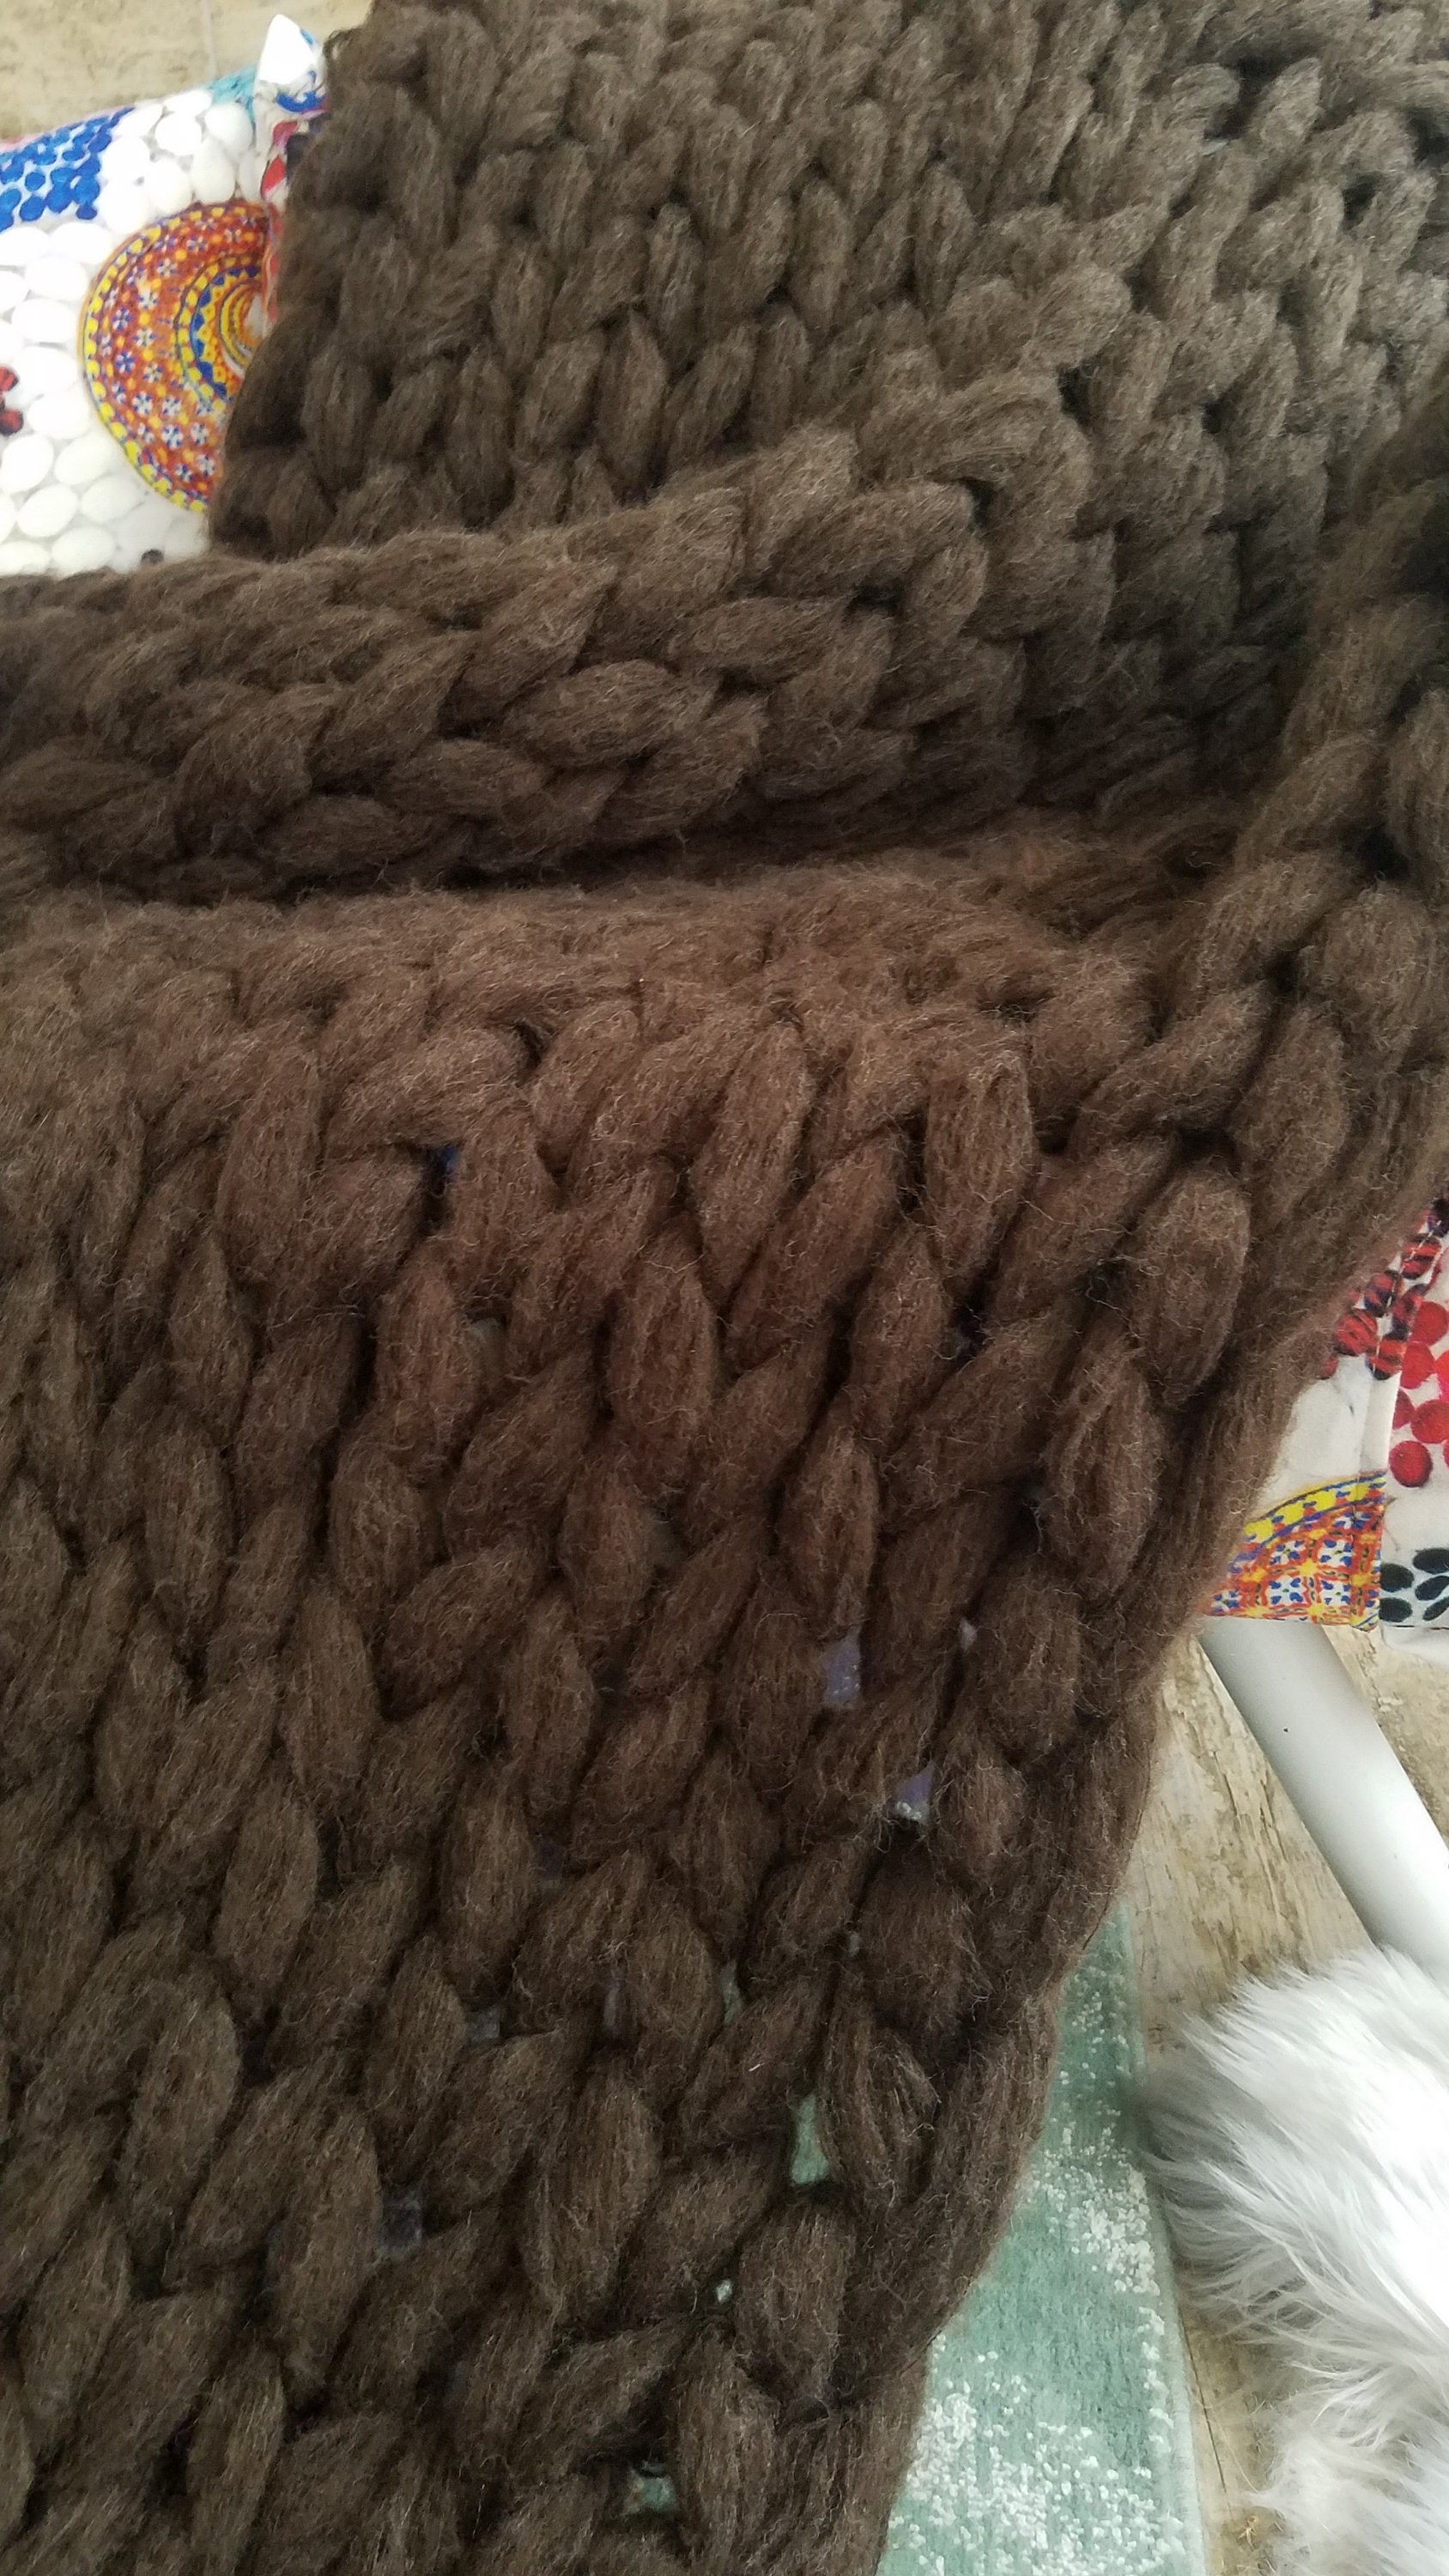 Brown Chunky Knit Blanket,40x60 inch,Christmas Gift, Home Decor,Throw Blanket,Chunky knit throw,Christmas Gift for Her, READY TO SHIP